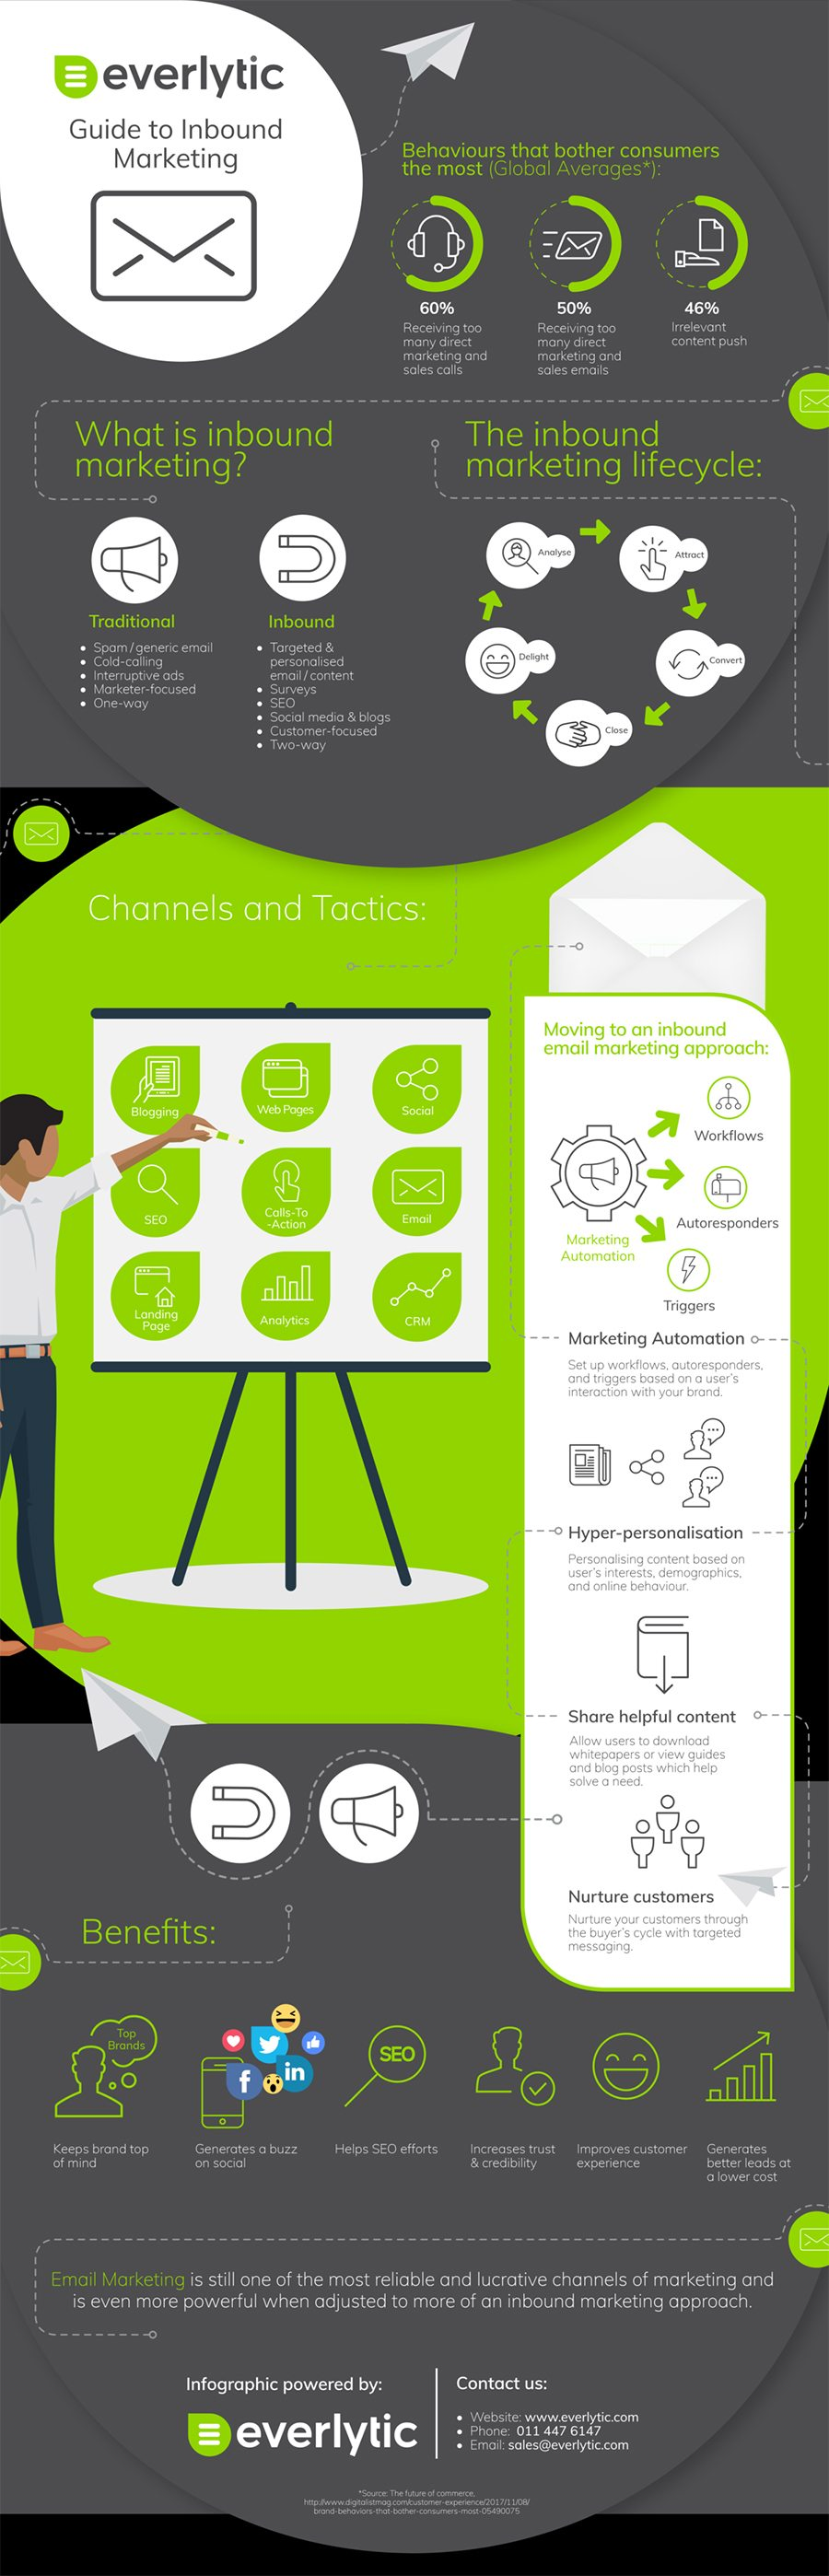 9 Inbound Marketing Channels & Techniques That Will Grow Your Business [Infographic] | Social Media Today